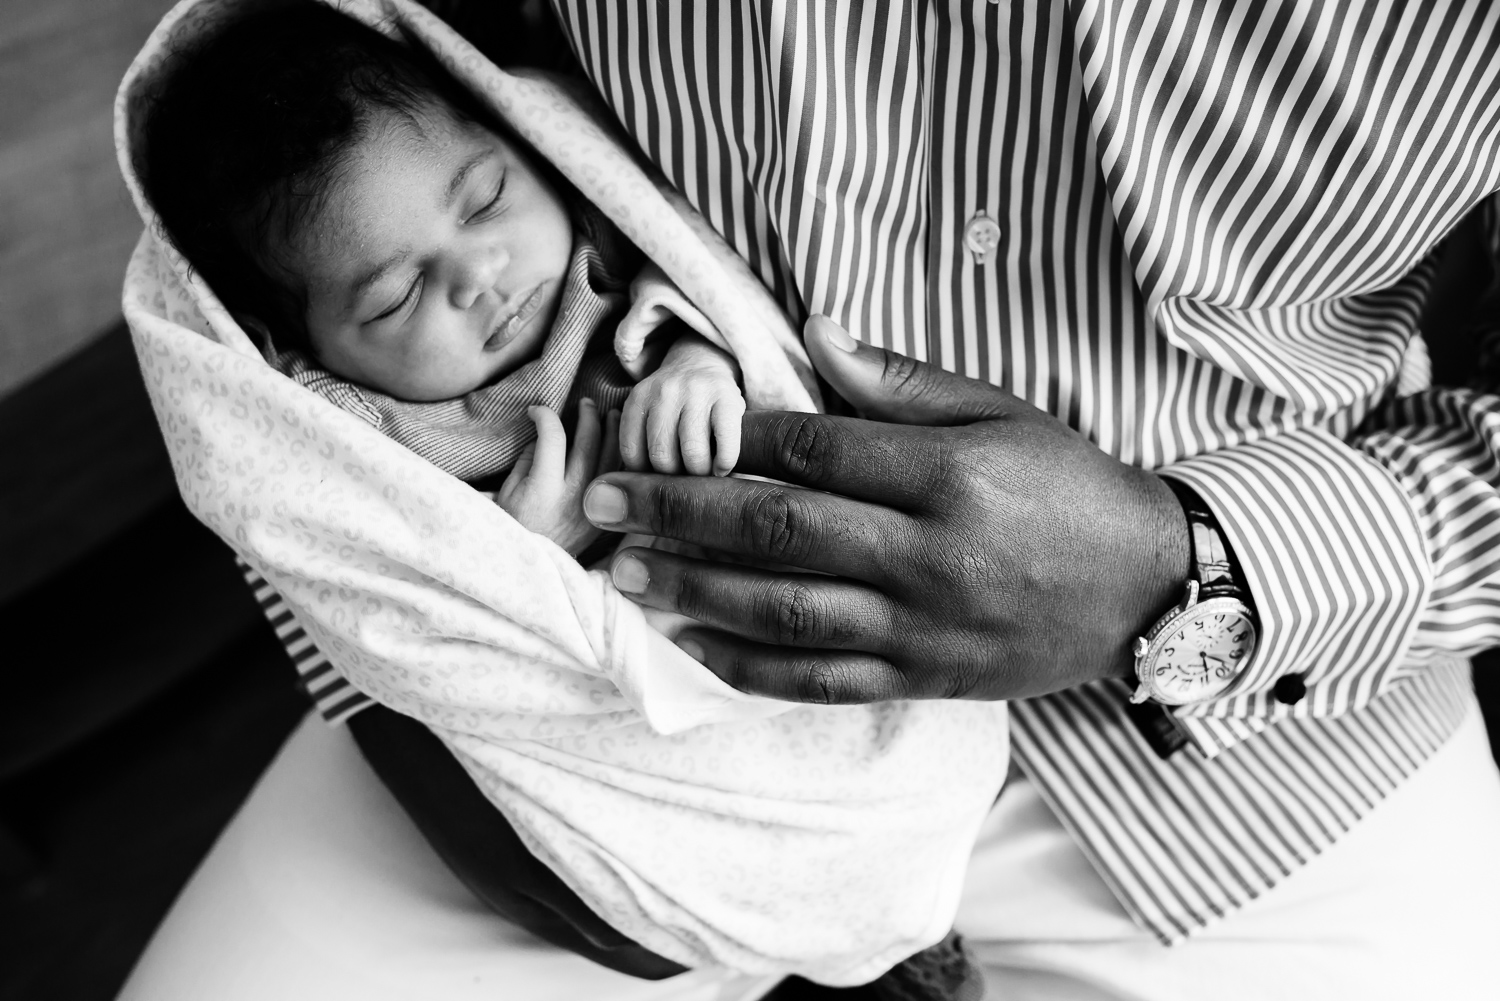 Lana-Photographs-Dubai-Newborn-Photography-RuksF48-PSLR-20.jpg